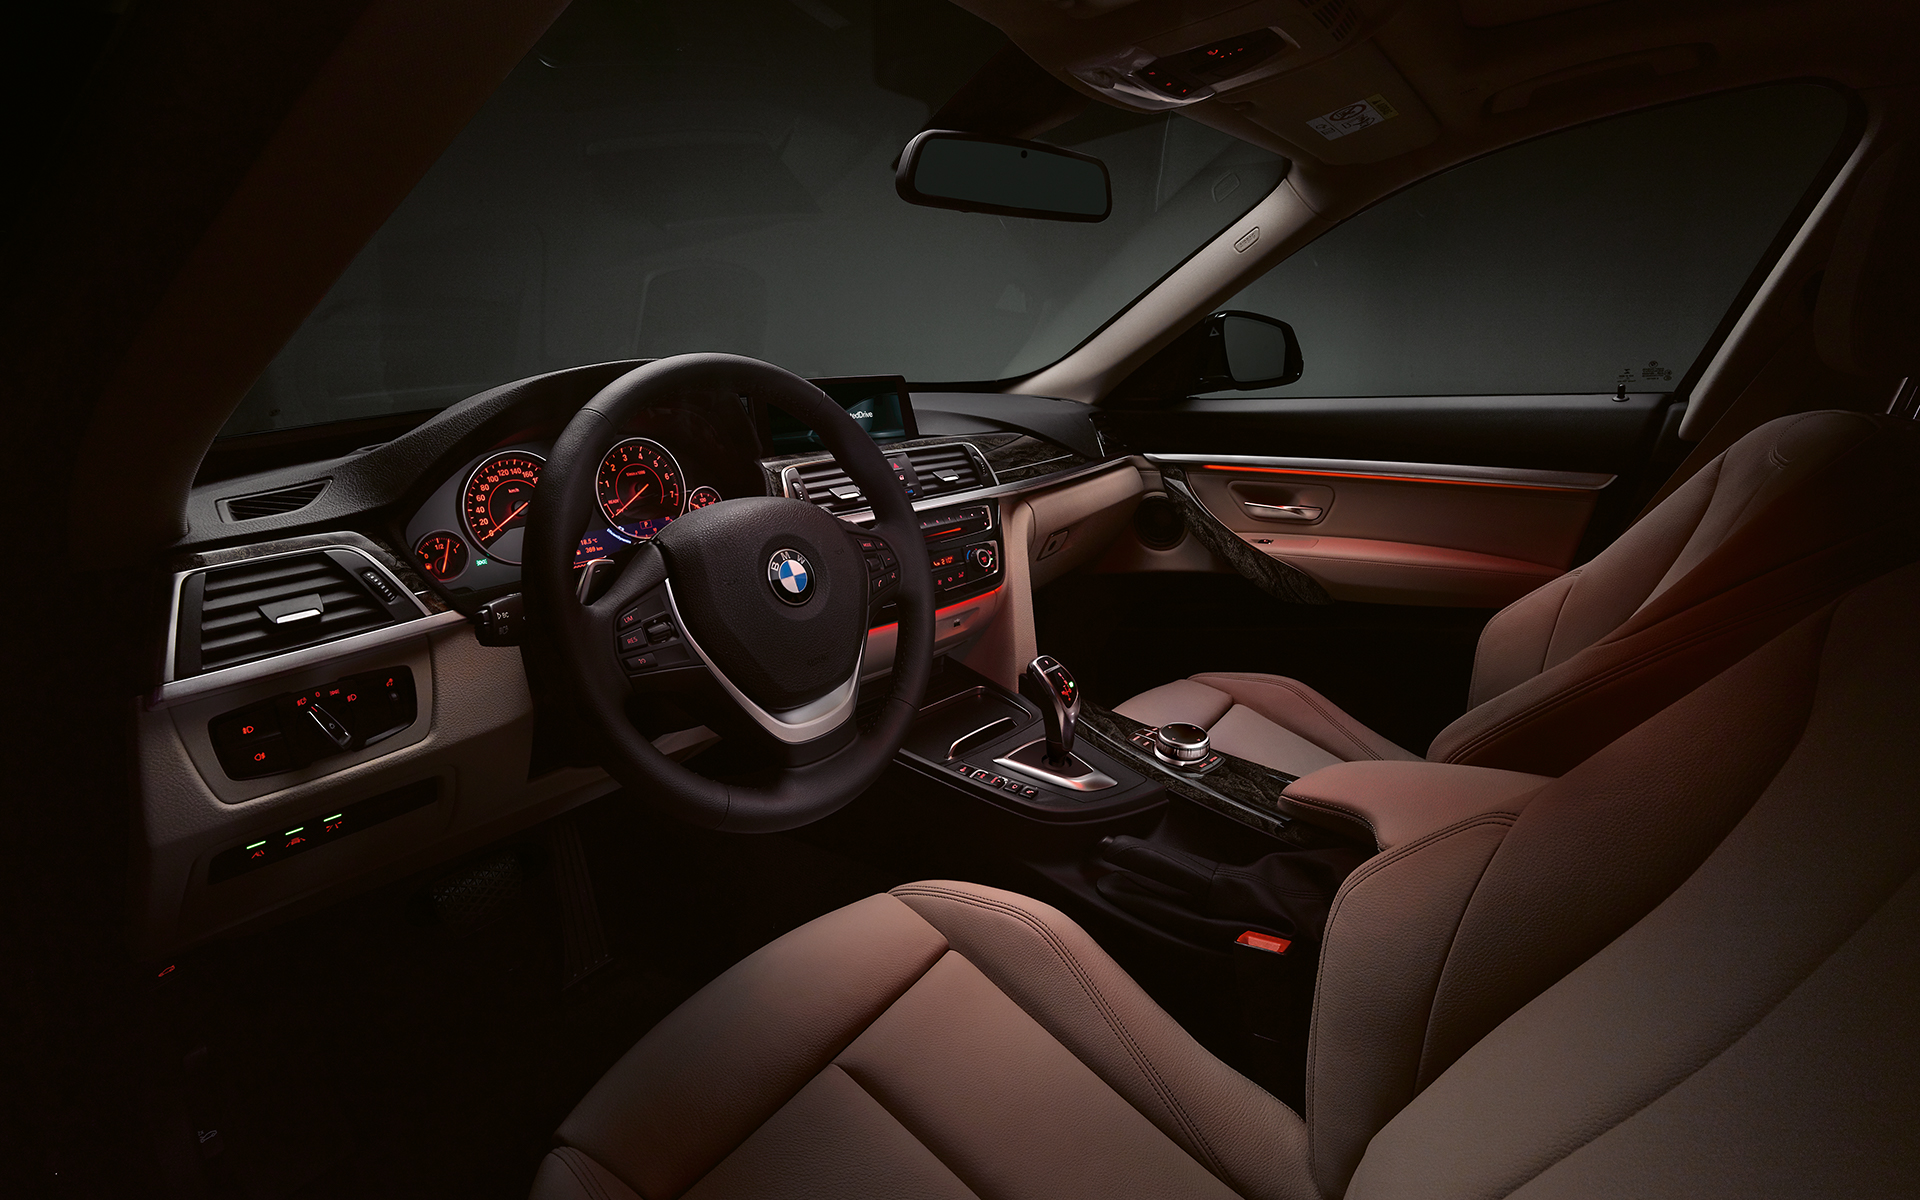 BMW 3 Series Gran Turismo - front seats and dashboard.